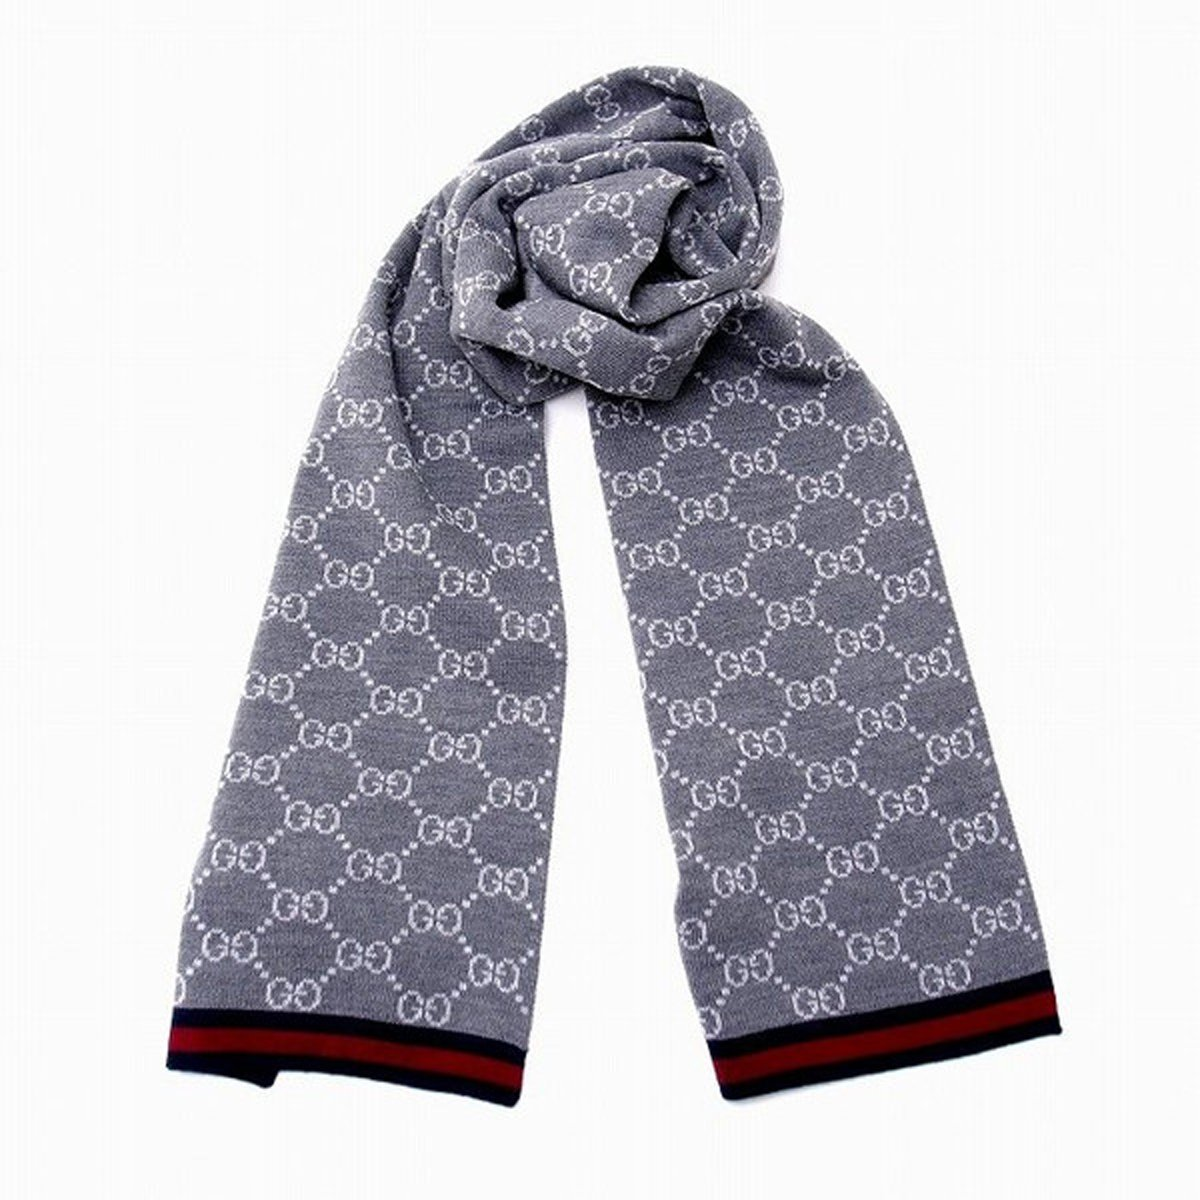 Gucci 'GG' Logo Unisex Wool Scarf with Blue/Red Web 325806, Graphite Grey by Gucci